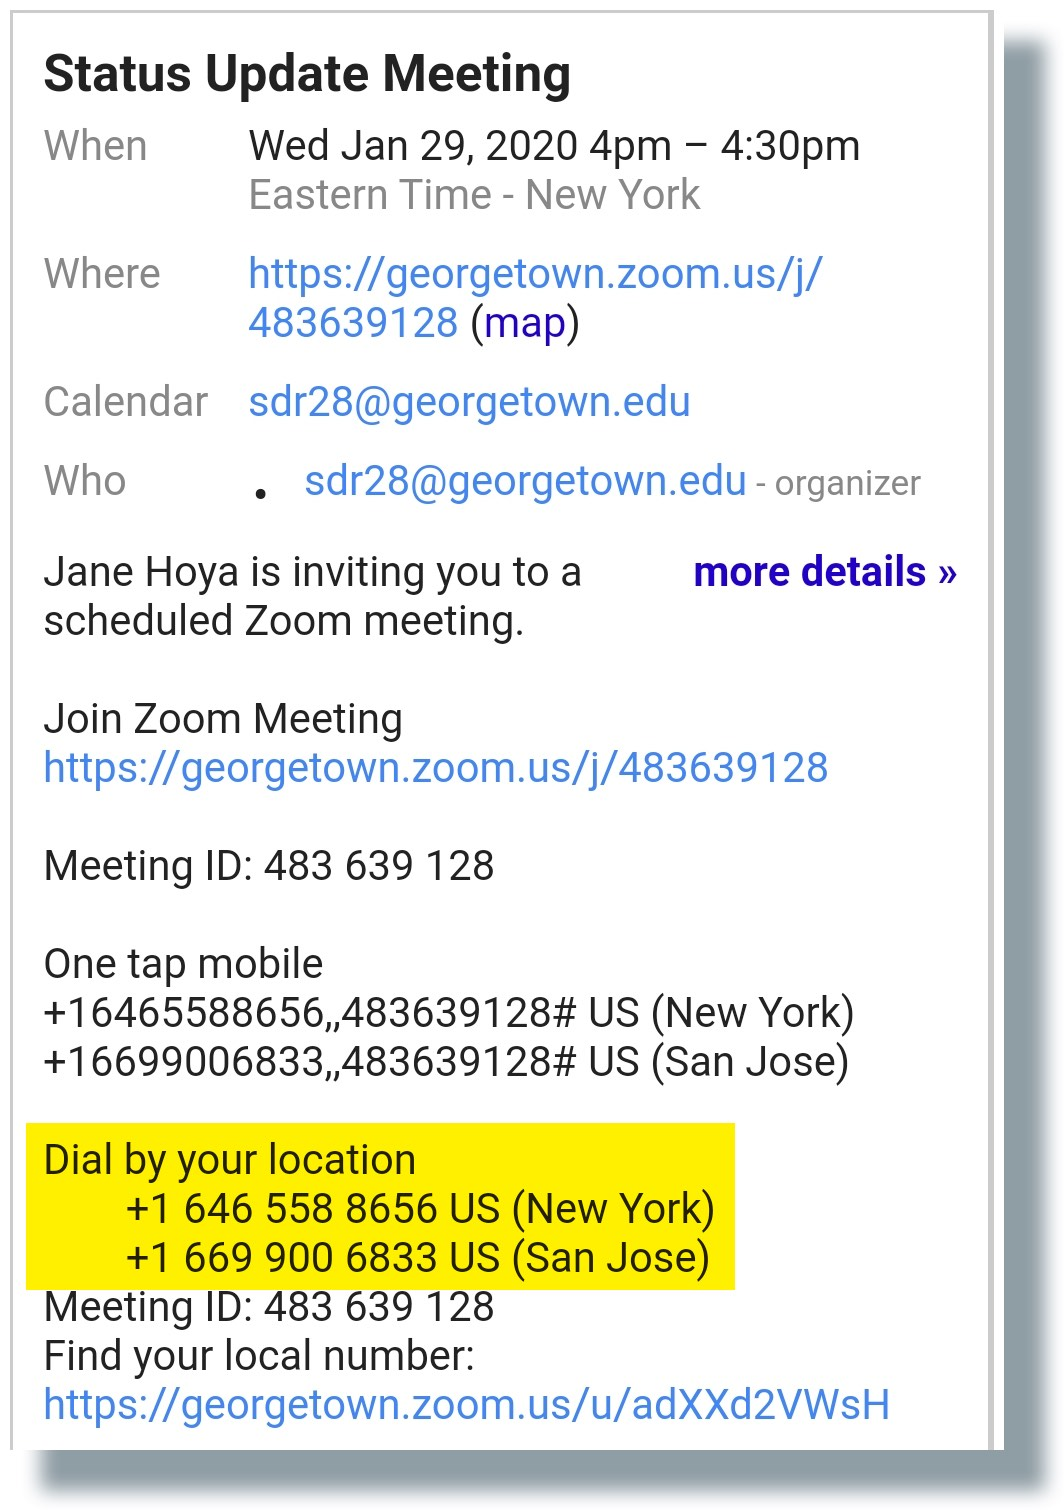 Zoom call-in numbers shown in invite email